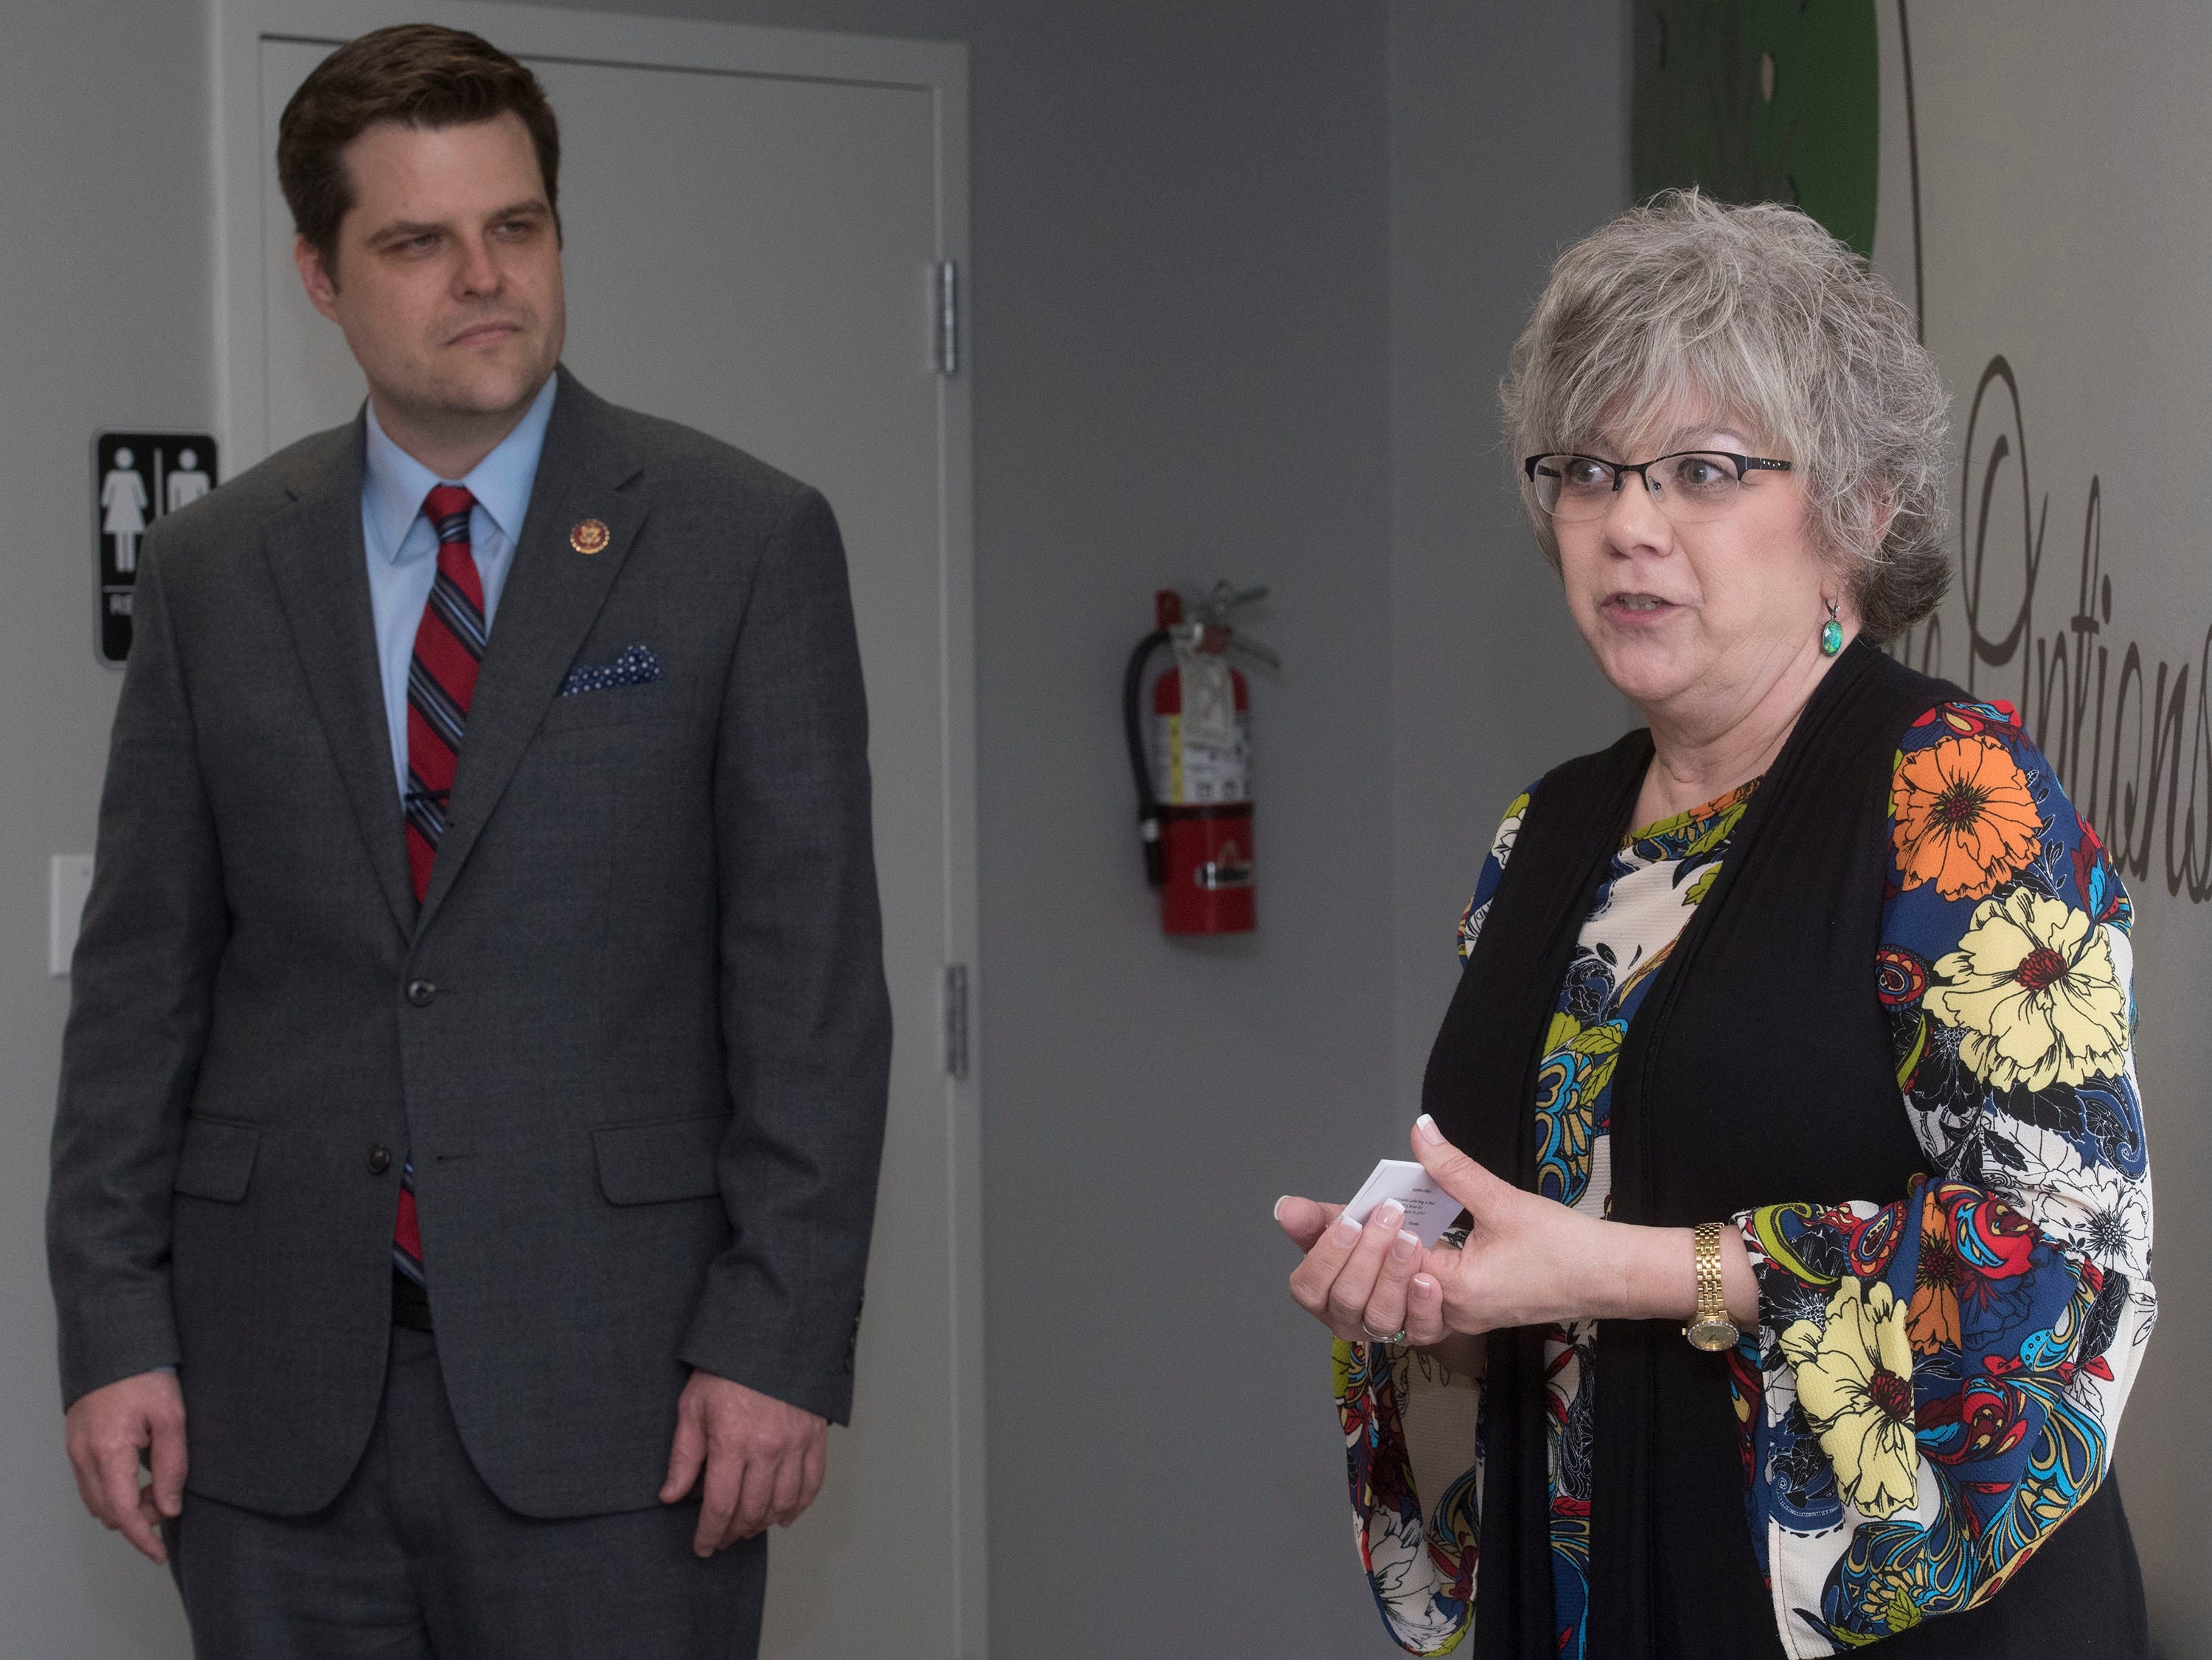 Cindy Roberts, the executive director of Life Options Clinic in Milton, describes the organization's mission, while Congressman Matt Gaetz looks on, during the dedication of the organization's building on Friday, March 15, 2019.